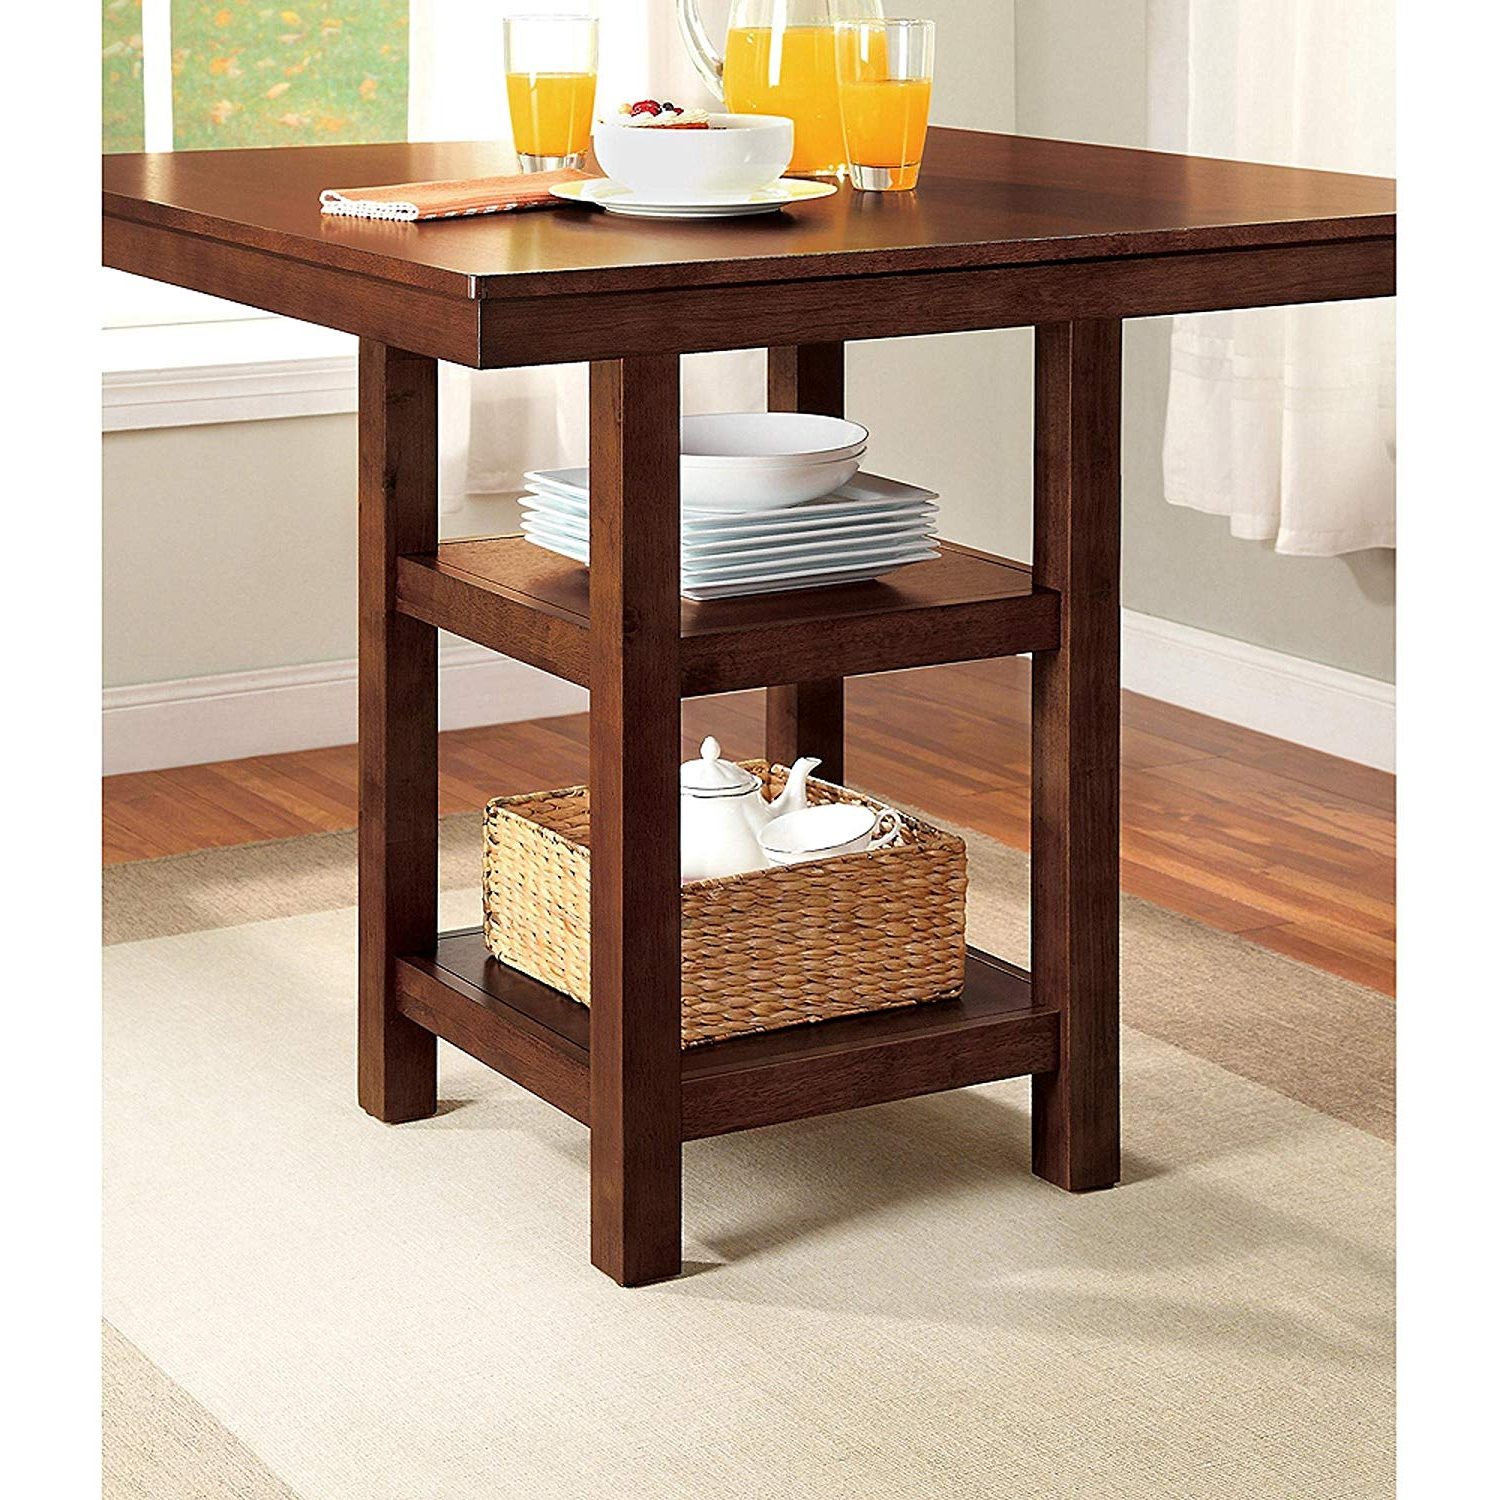 Denzel 5 Piece Counter Height Breakfast Nook Dining Sets Pertaining To Preferred Amazon – 5 Piece Dalton Park Counter Height Dining Set, Mocha (View 21 of 25)